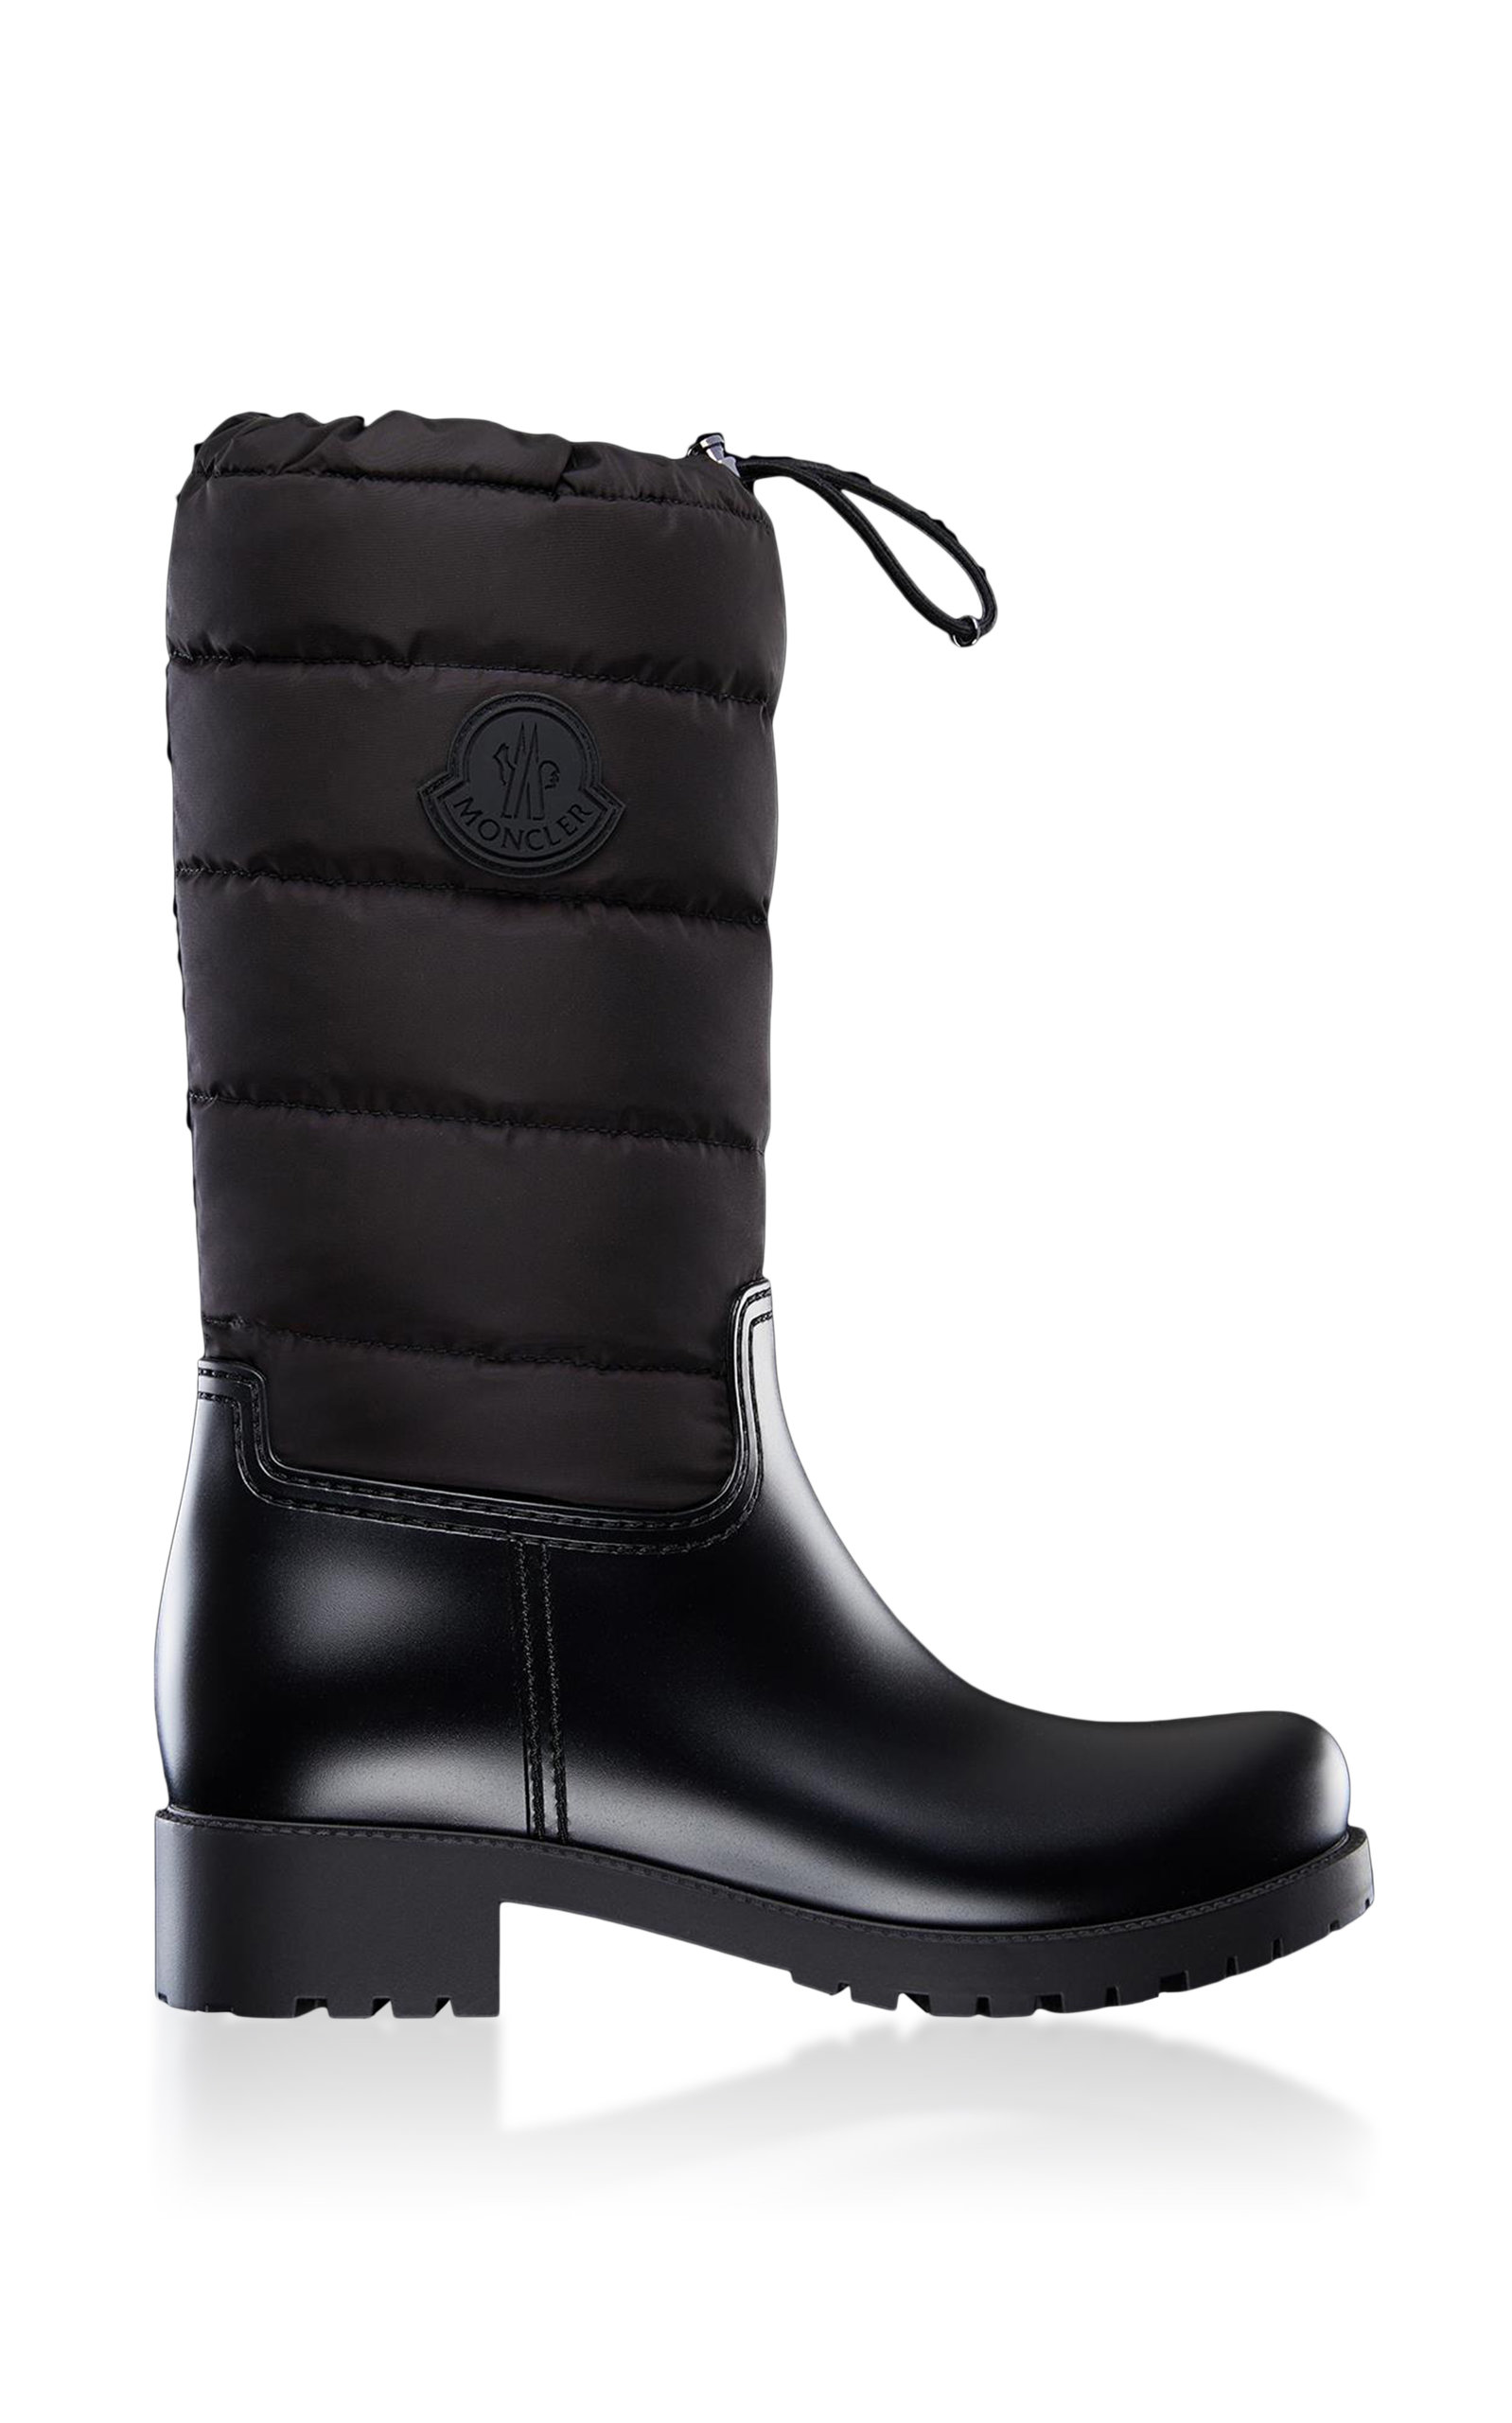 Moncler Boots Ginette Leather Puffer Boots